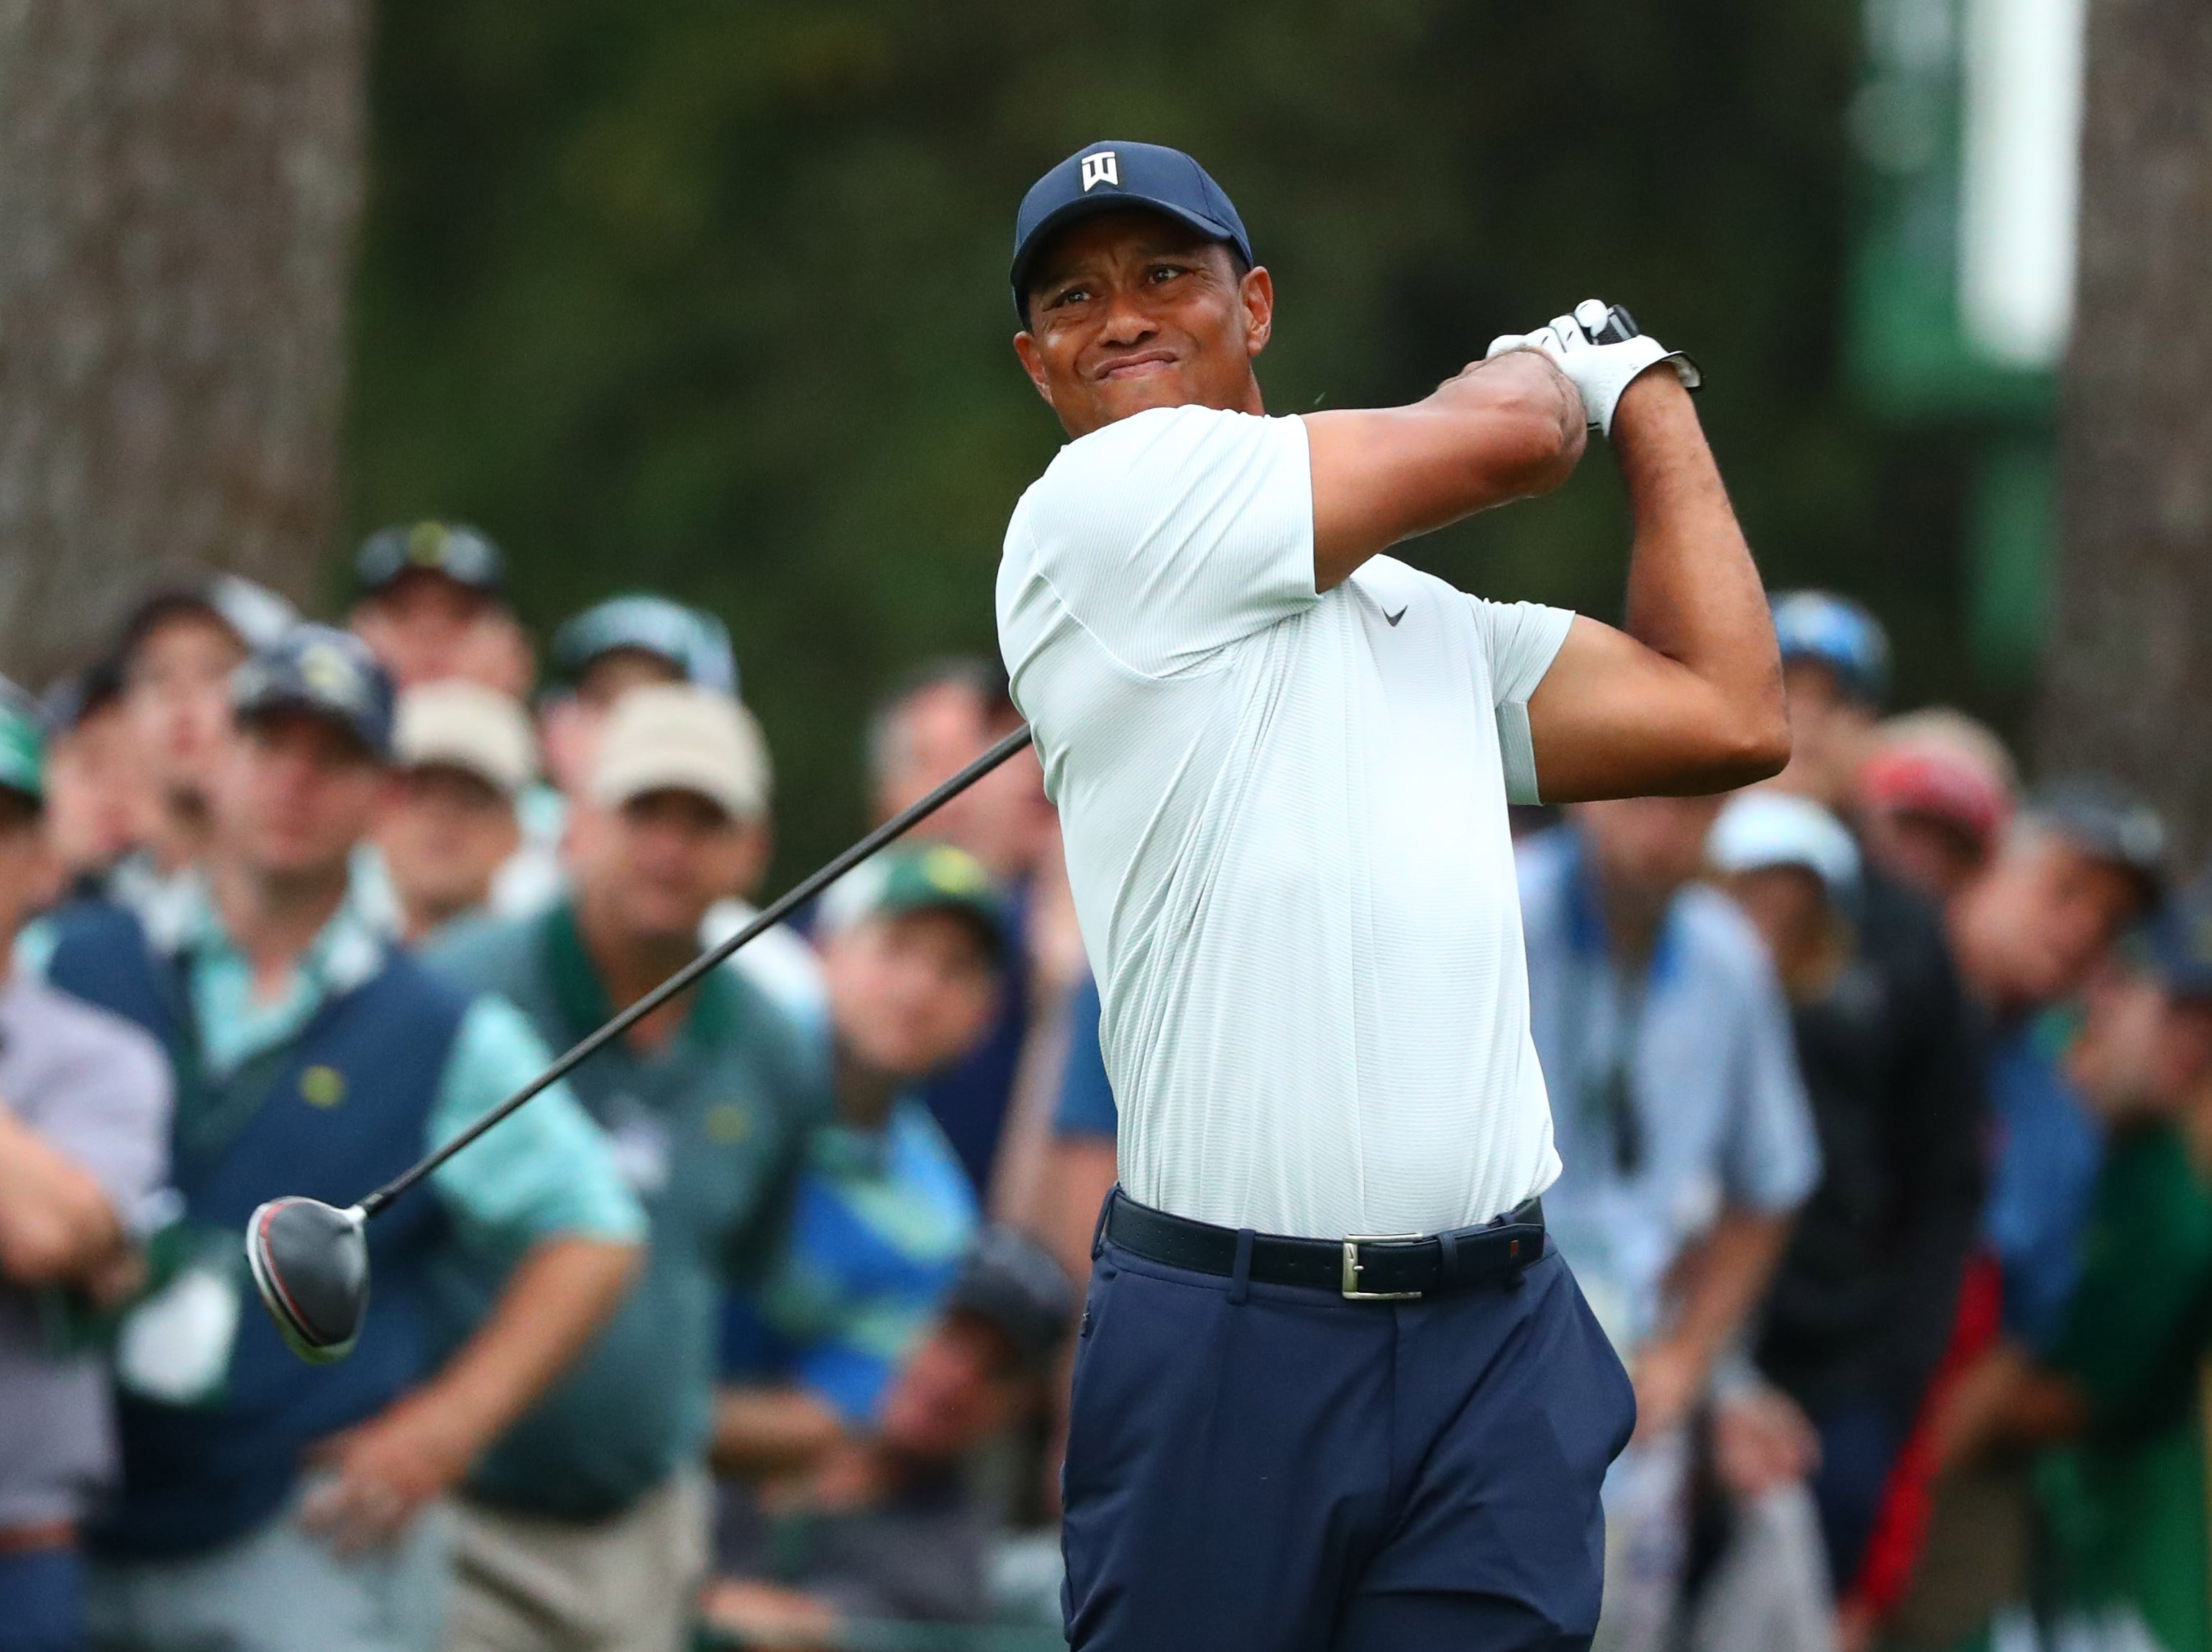 Apr 12, 2019; Augusta, GA, USA; Tiger Woods hits his tee shot on the 17th hole during the second round of The Masters golf tournament at Augusta National Golf Club. Mandatory Credit: Rob Schumacher-USA TODAY Sports